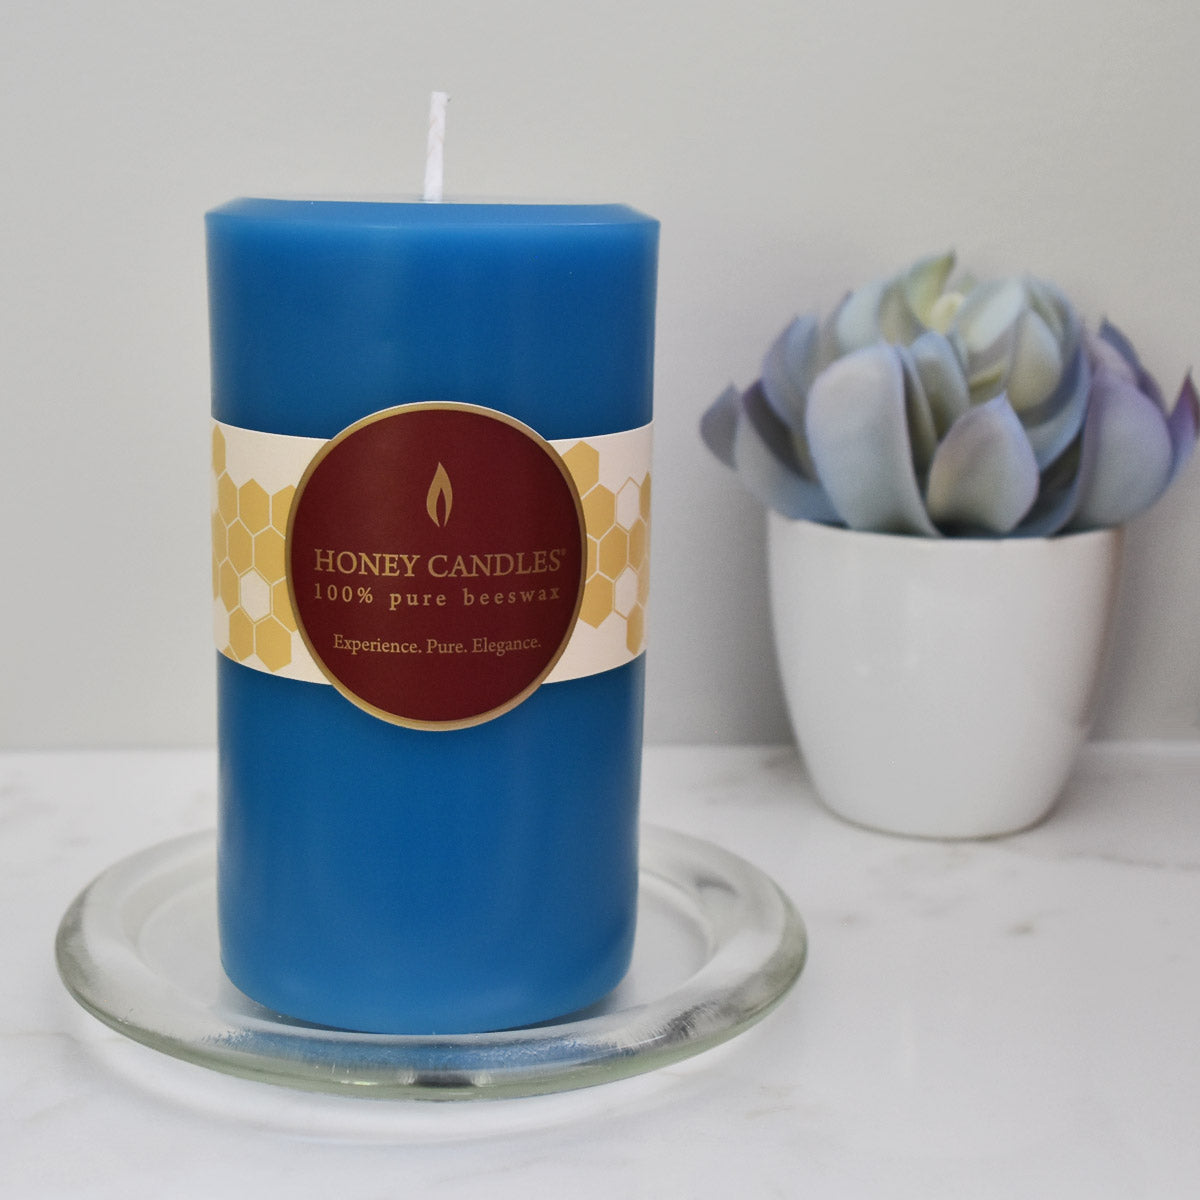 Teal blue natural beeswax pillar candle made from pure Canadian beeswax